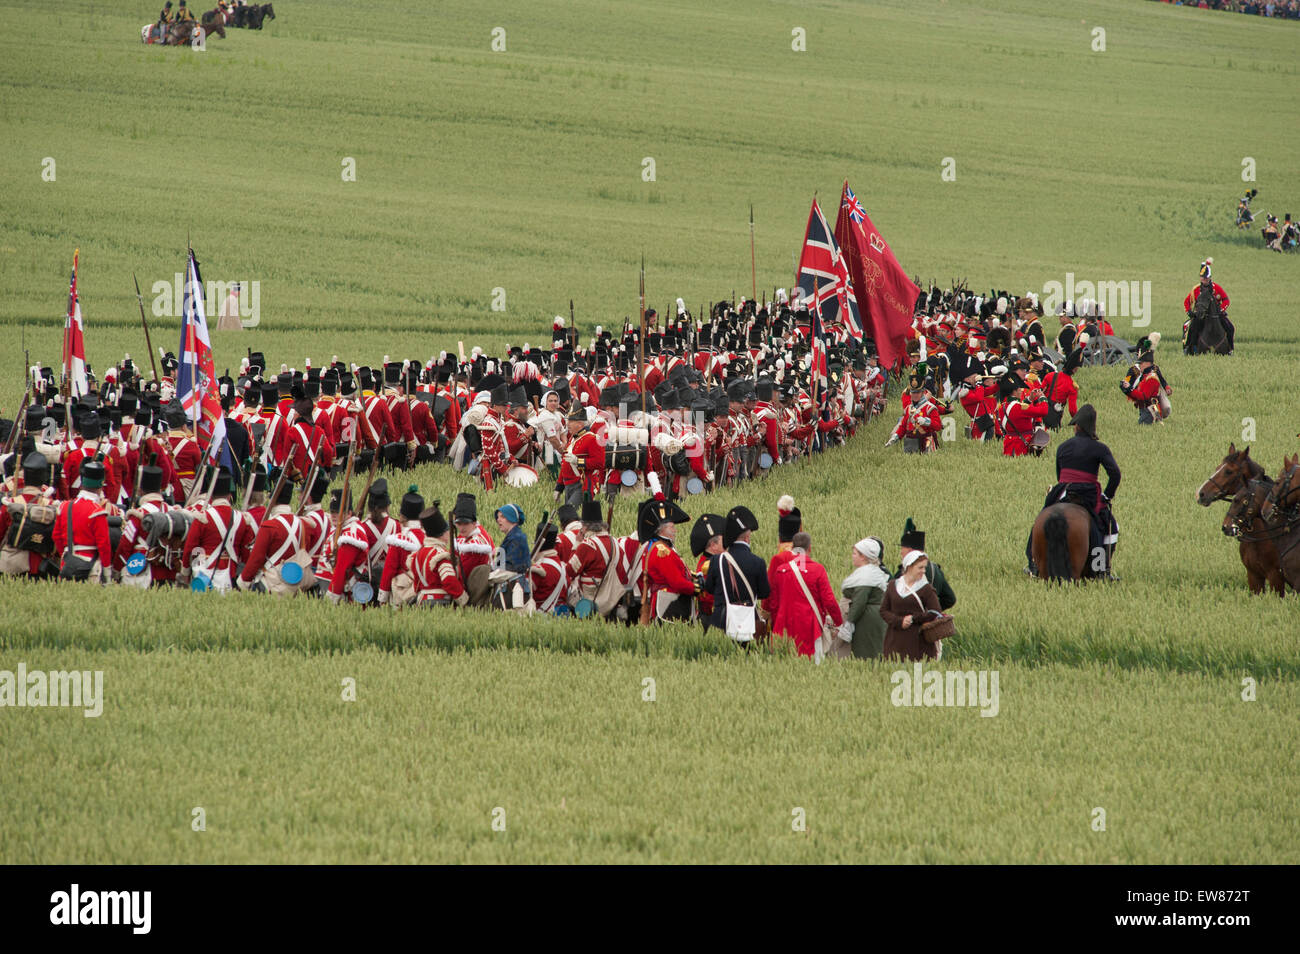 Lions Mound, Waterloo, Belgium. 19th June, 2015. First Reenactment: The French Attack. Wellington's army assembles - Stock Image